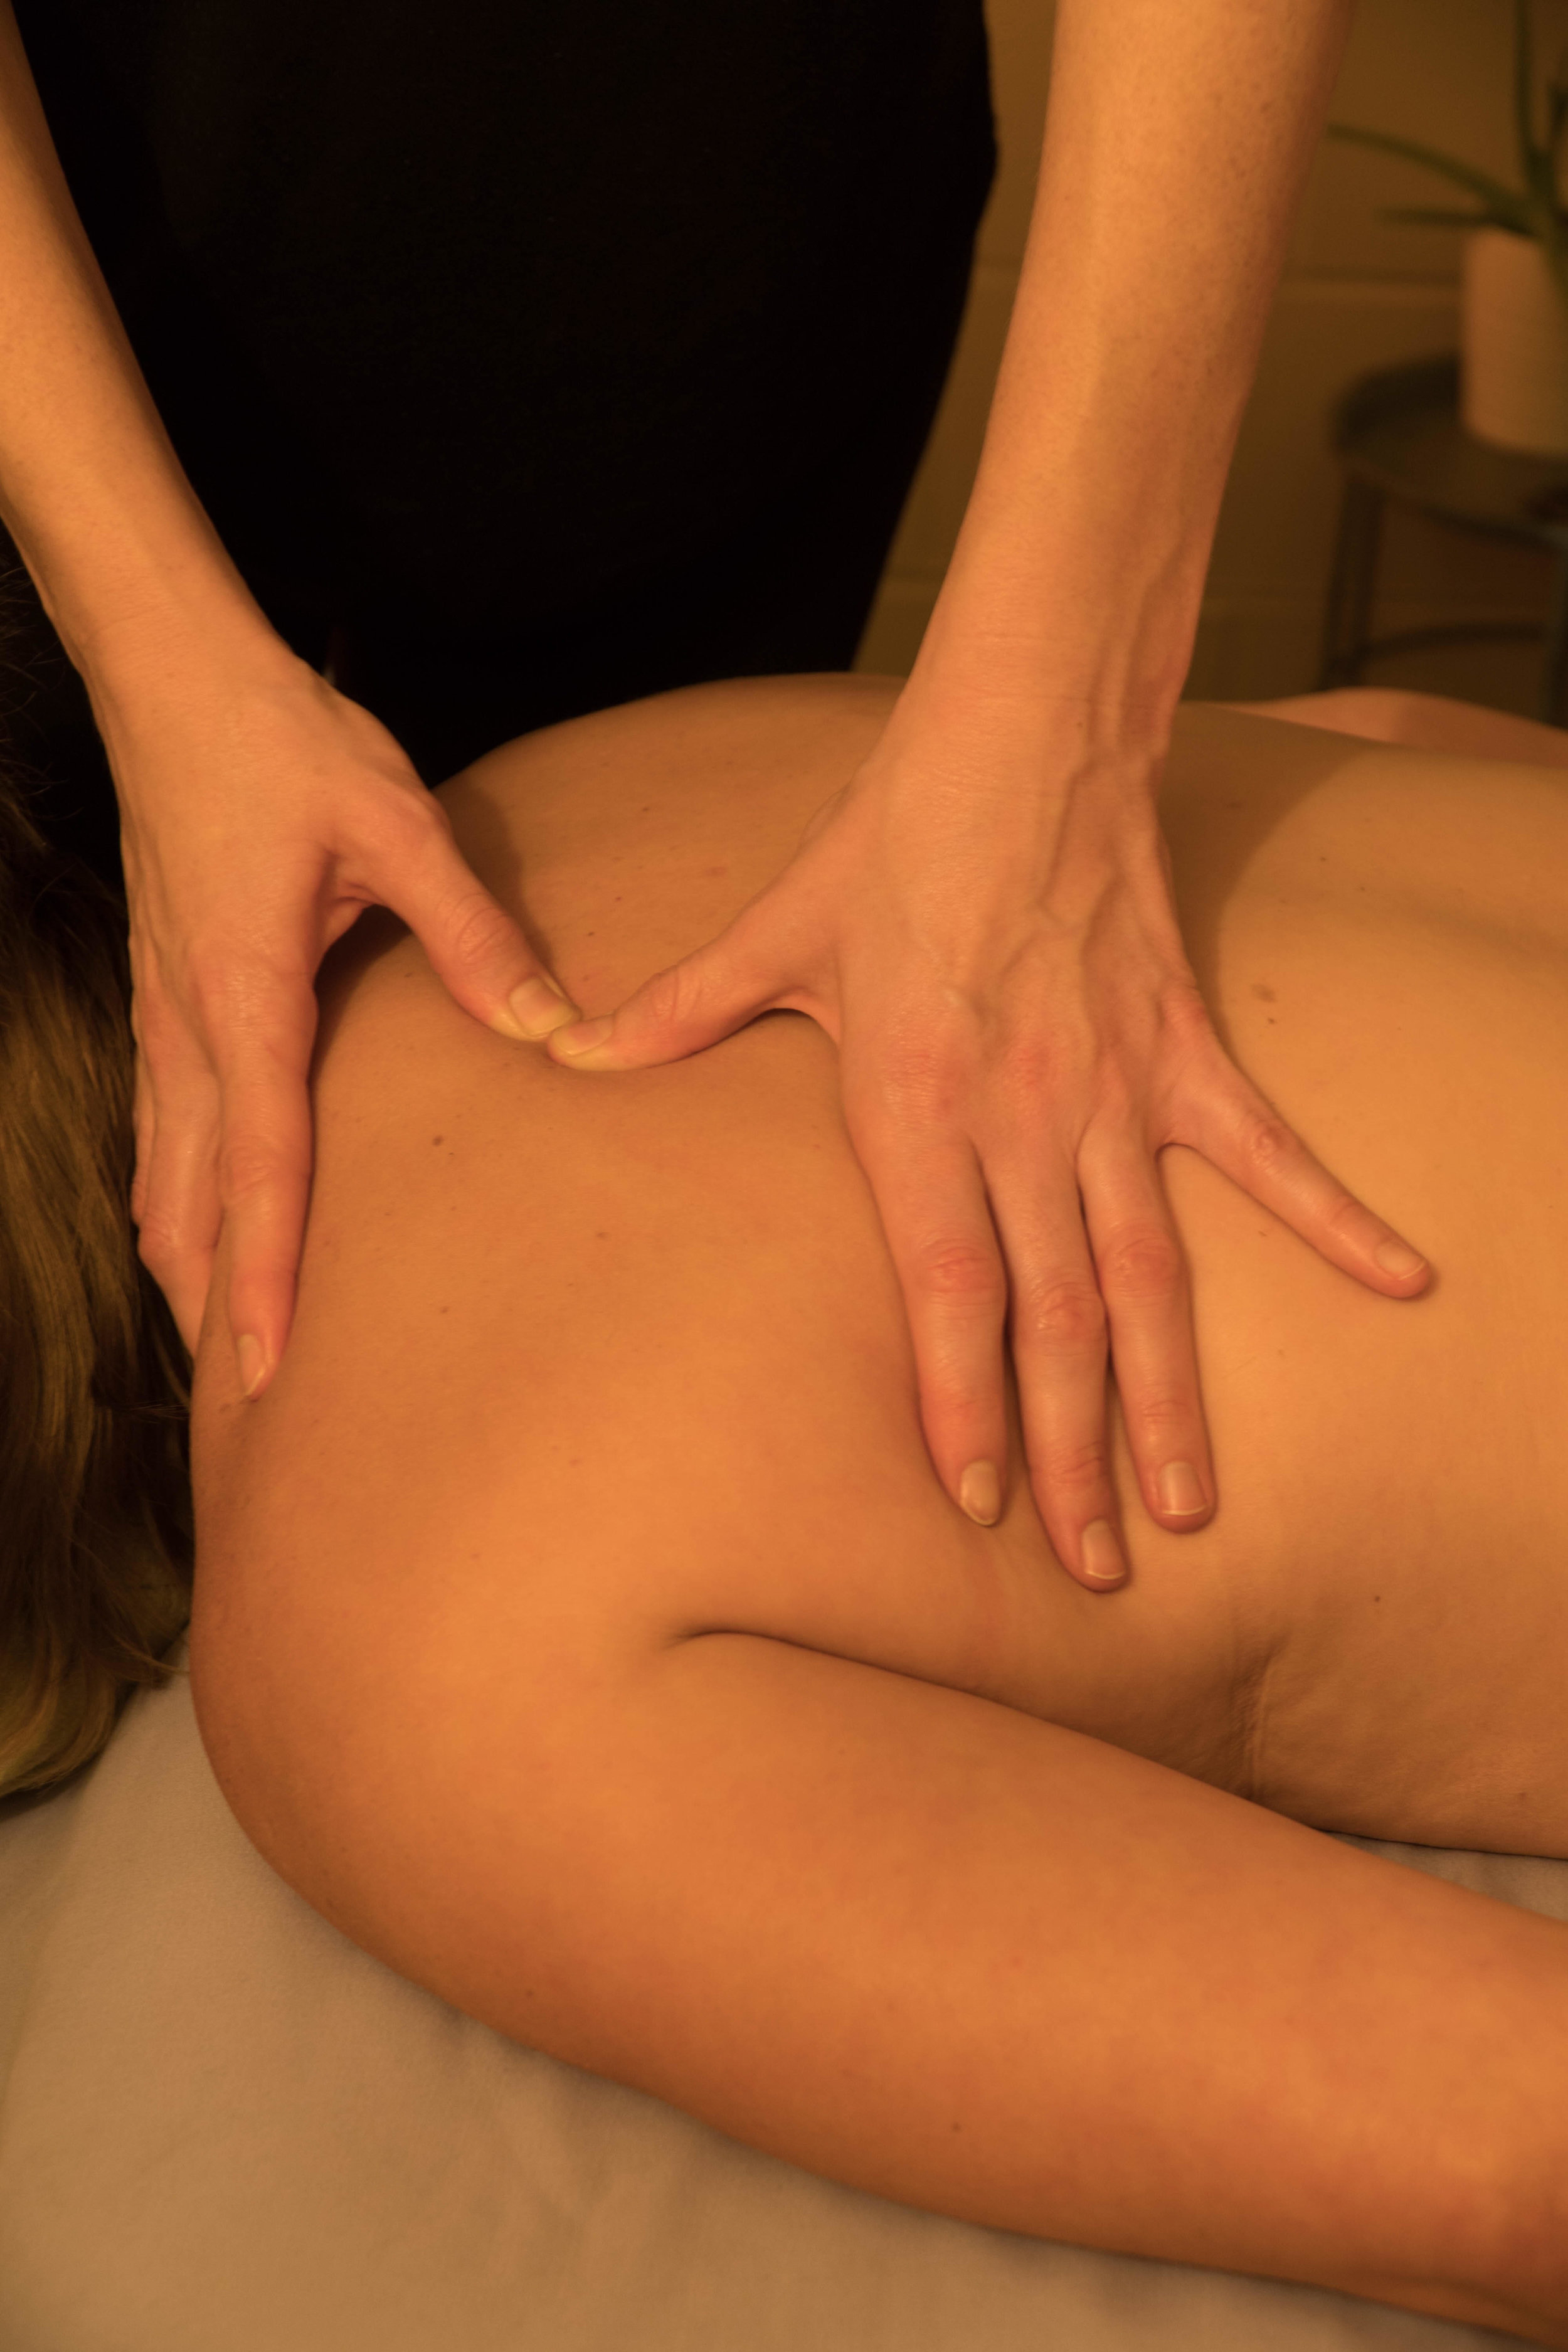 Kneaded Touch Massage, also known as Trigger Point Massage. Provided by Grant, Tamara, Carmella & Jannette.